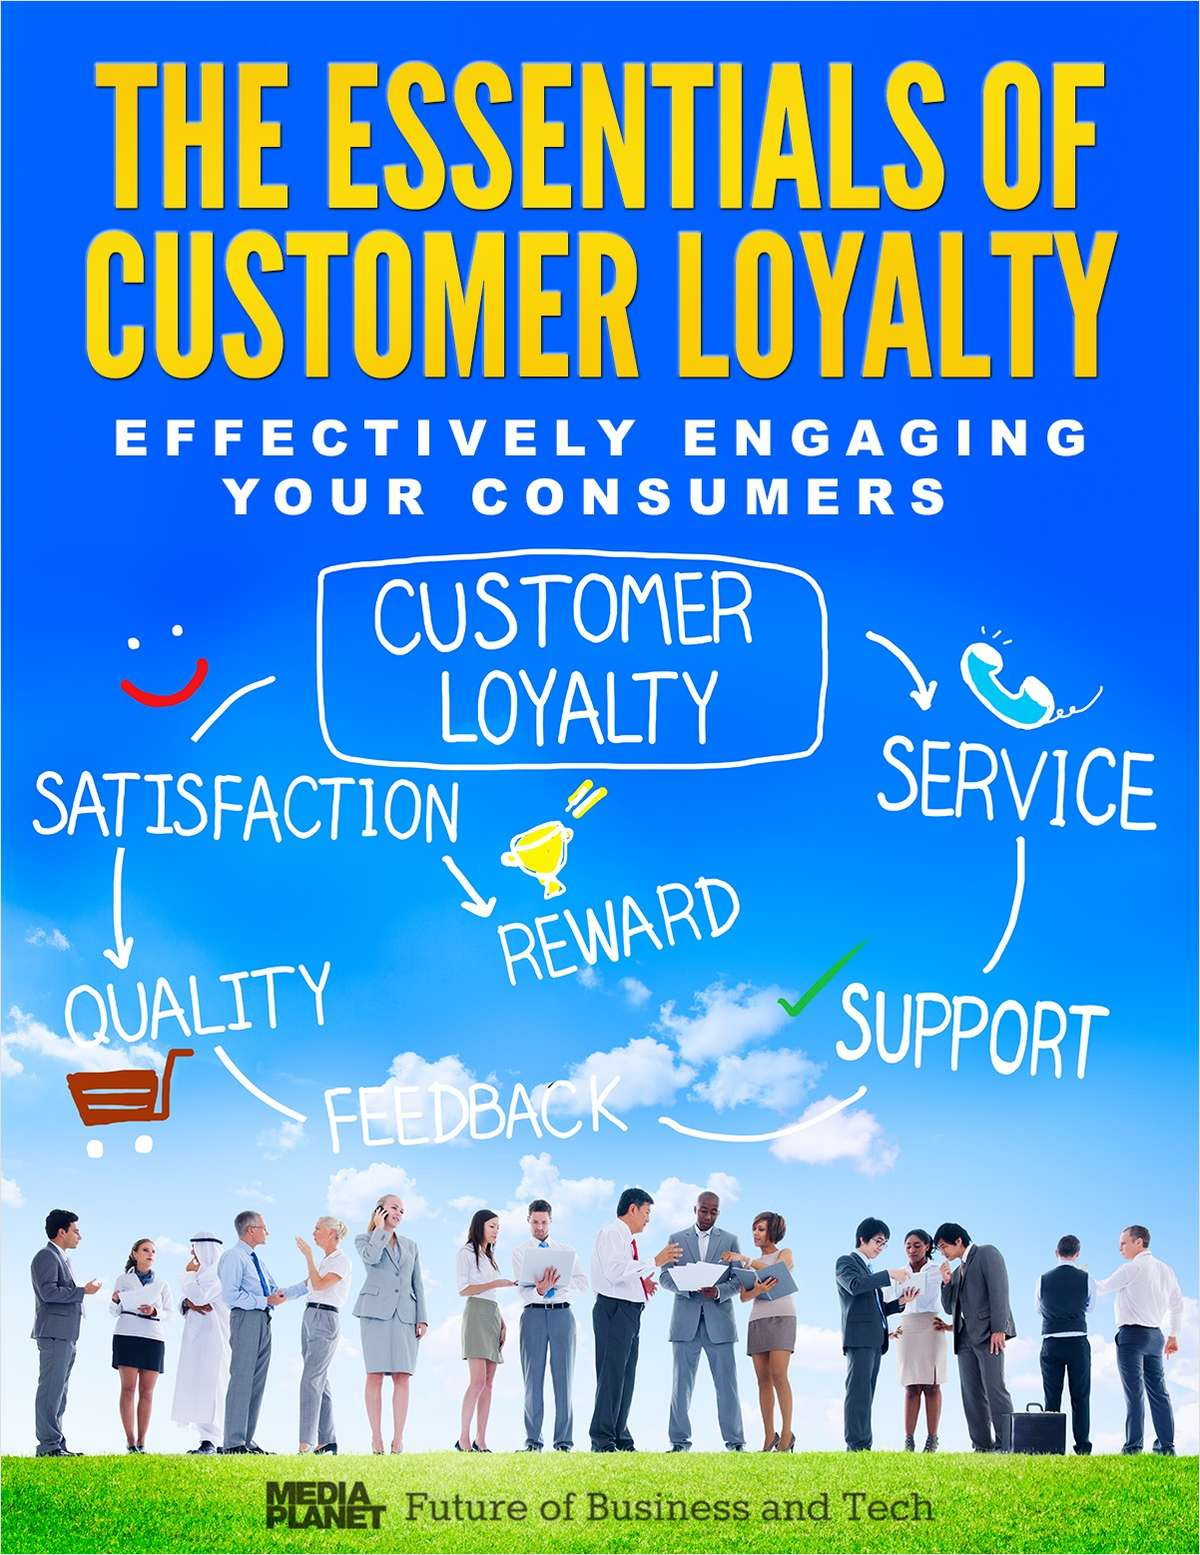 The Essentials of Customer Loyalty - Effectively Engaging Your Consumers